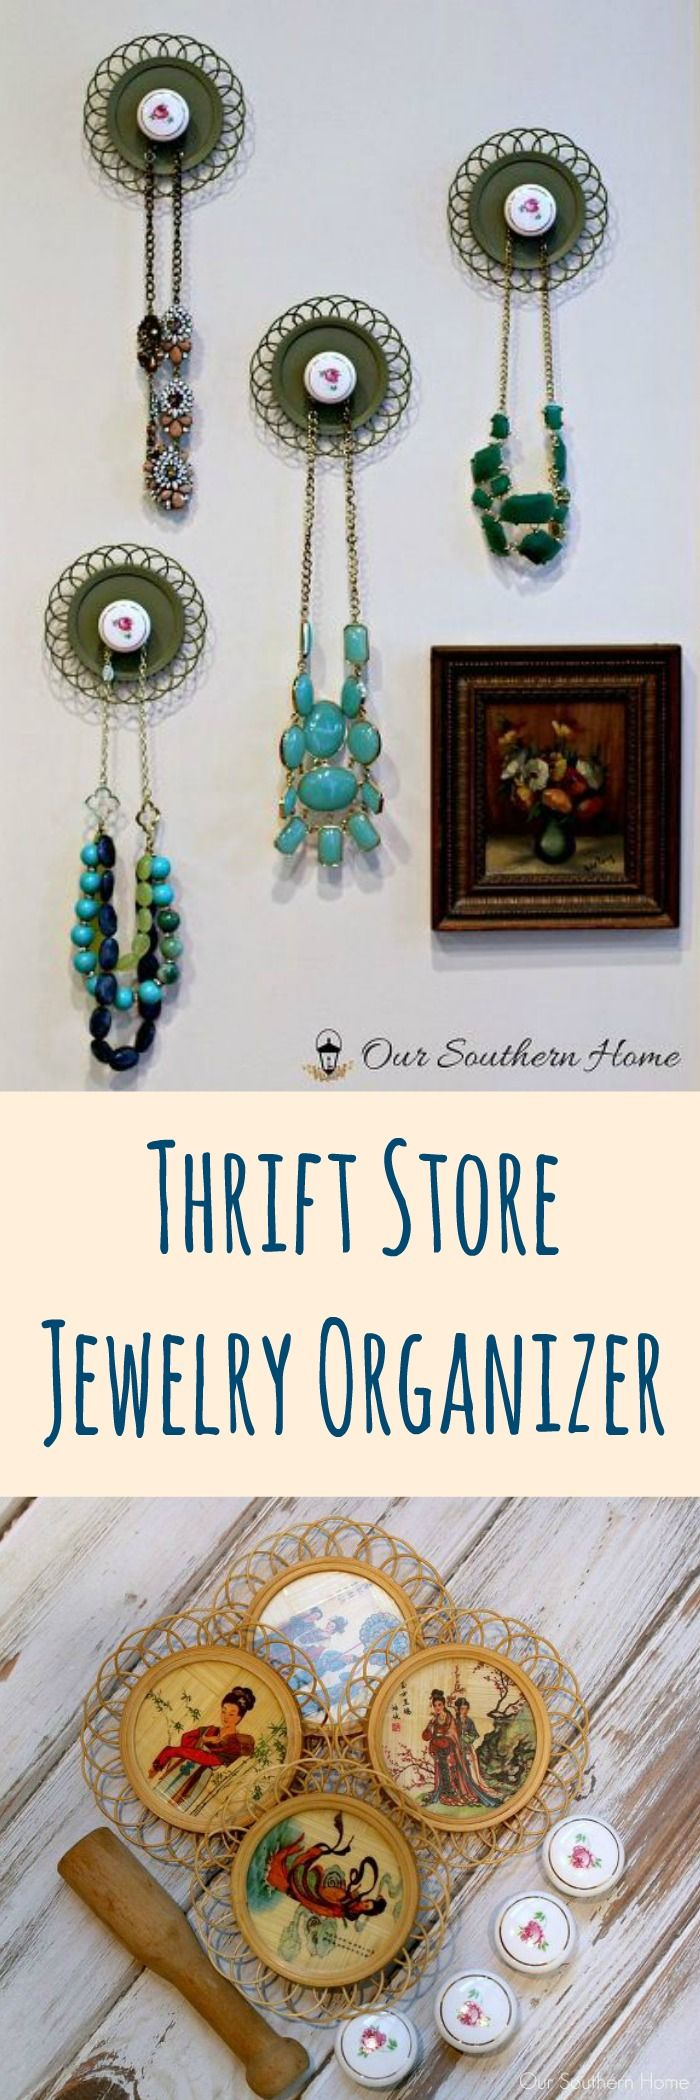 From Coasters And Door Knobs To Jewelry Hangers Thrift Shop and